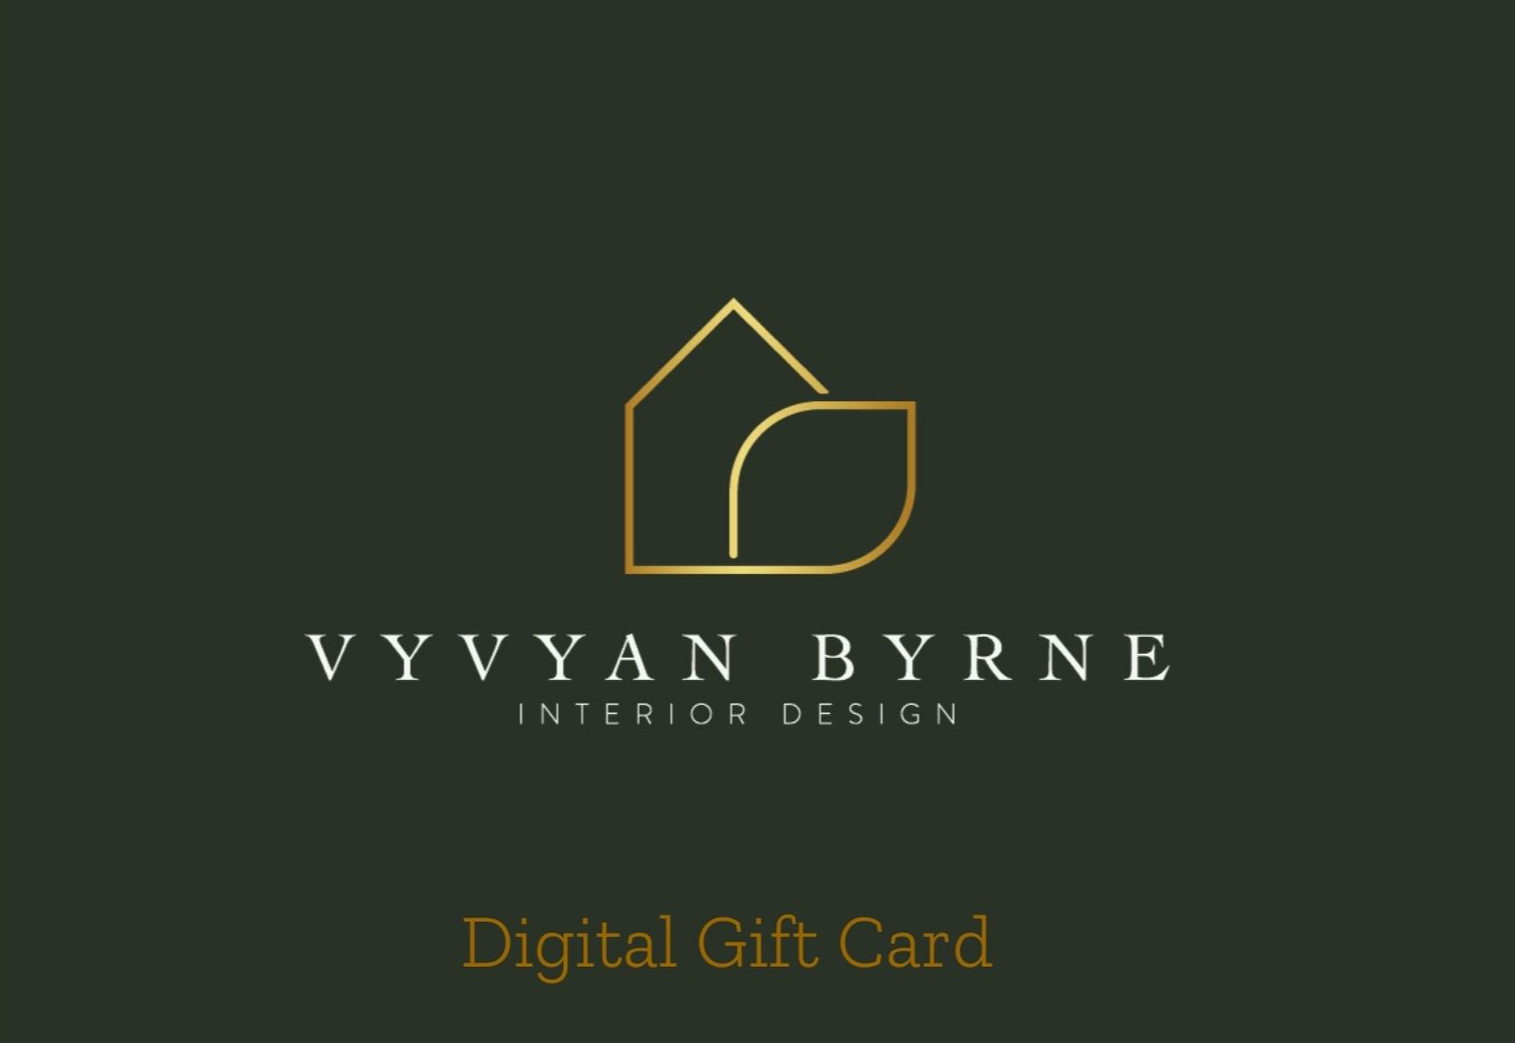 Digital Gift Card Image